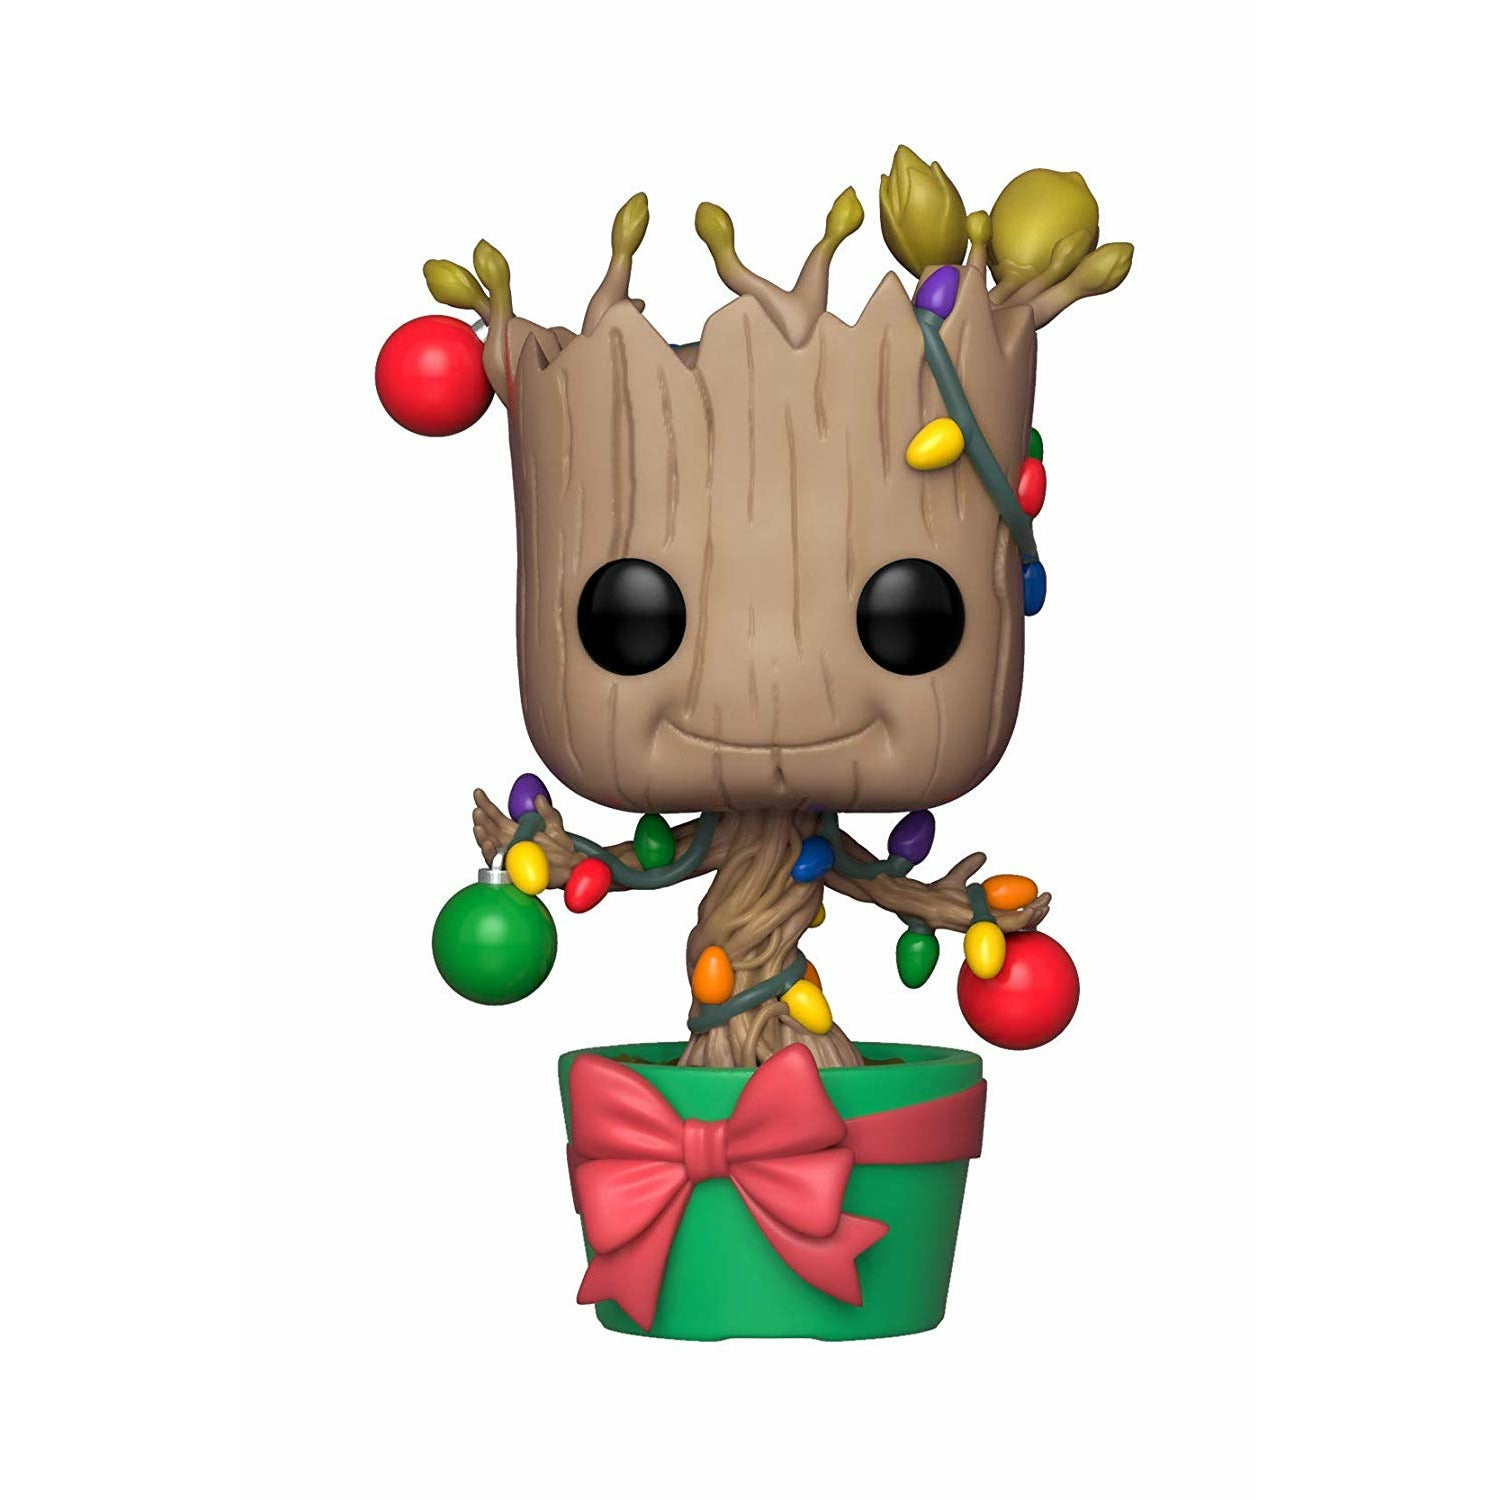 Marvel Guardians of the Galaxy Holiday Groot Bobblehead Pop! Vinyl Figure